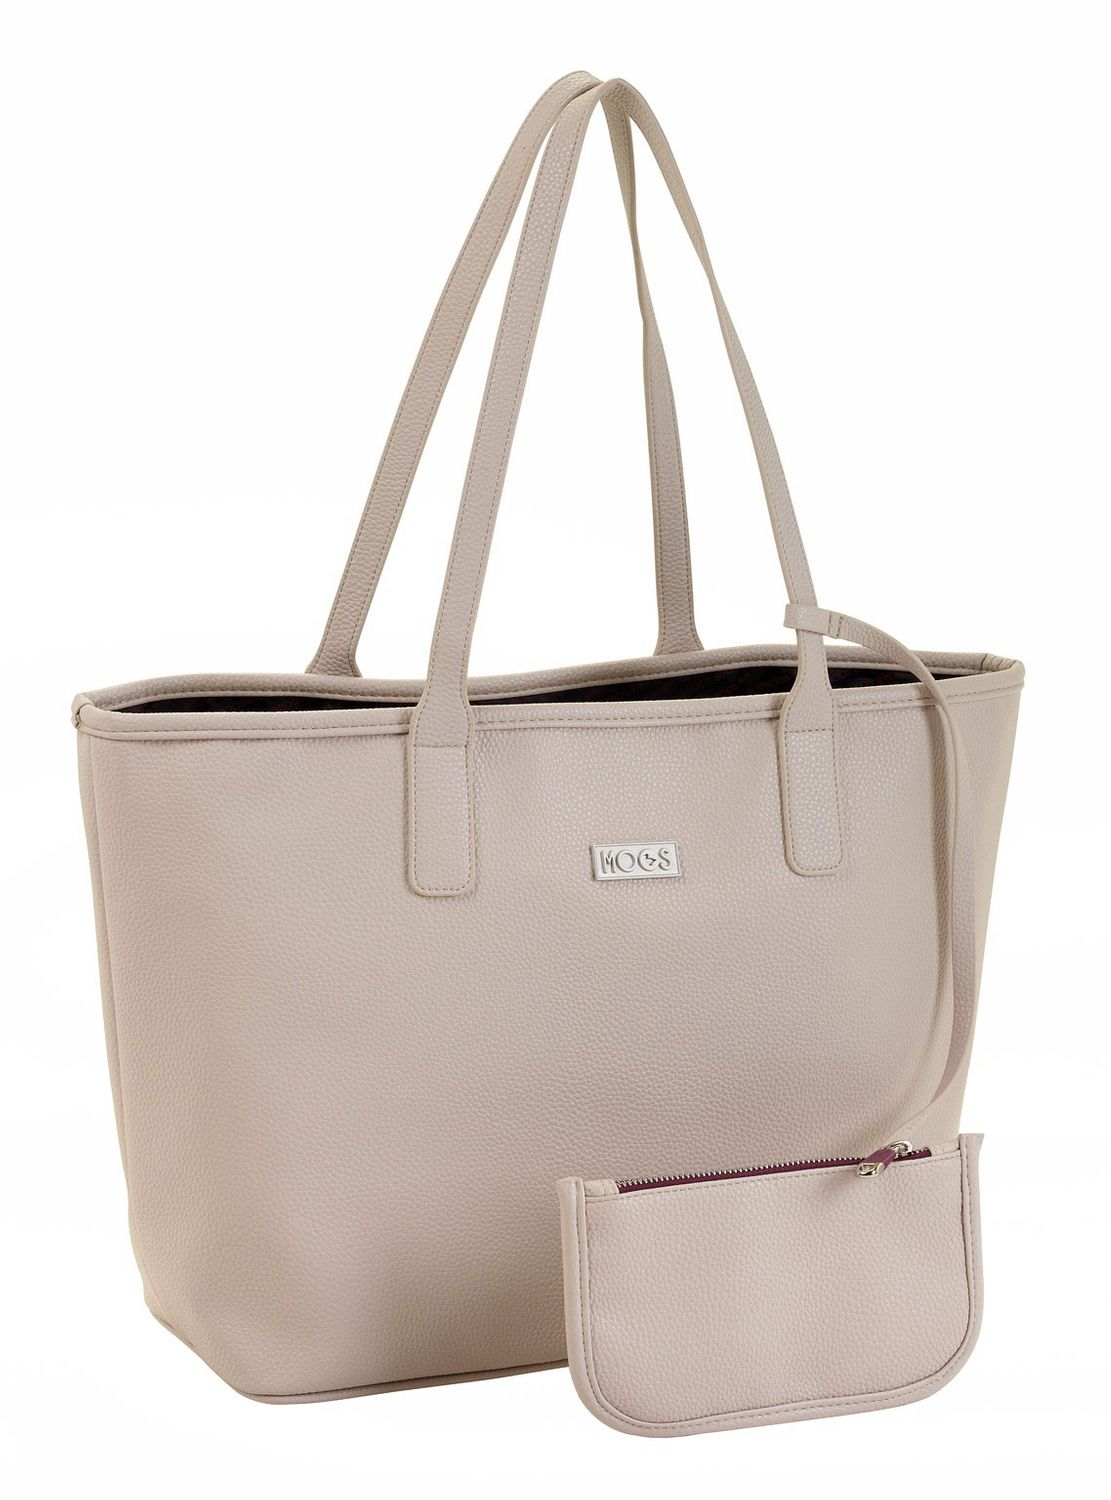 "MOOS ""Capsula BEIGE"" Deluxe Tote Shopping Bag With Purse"